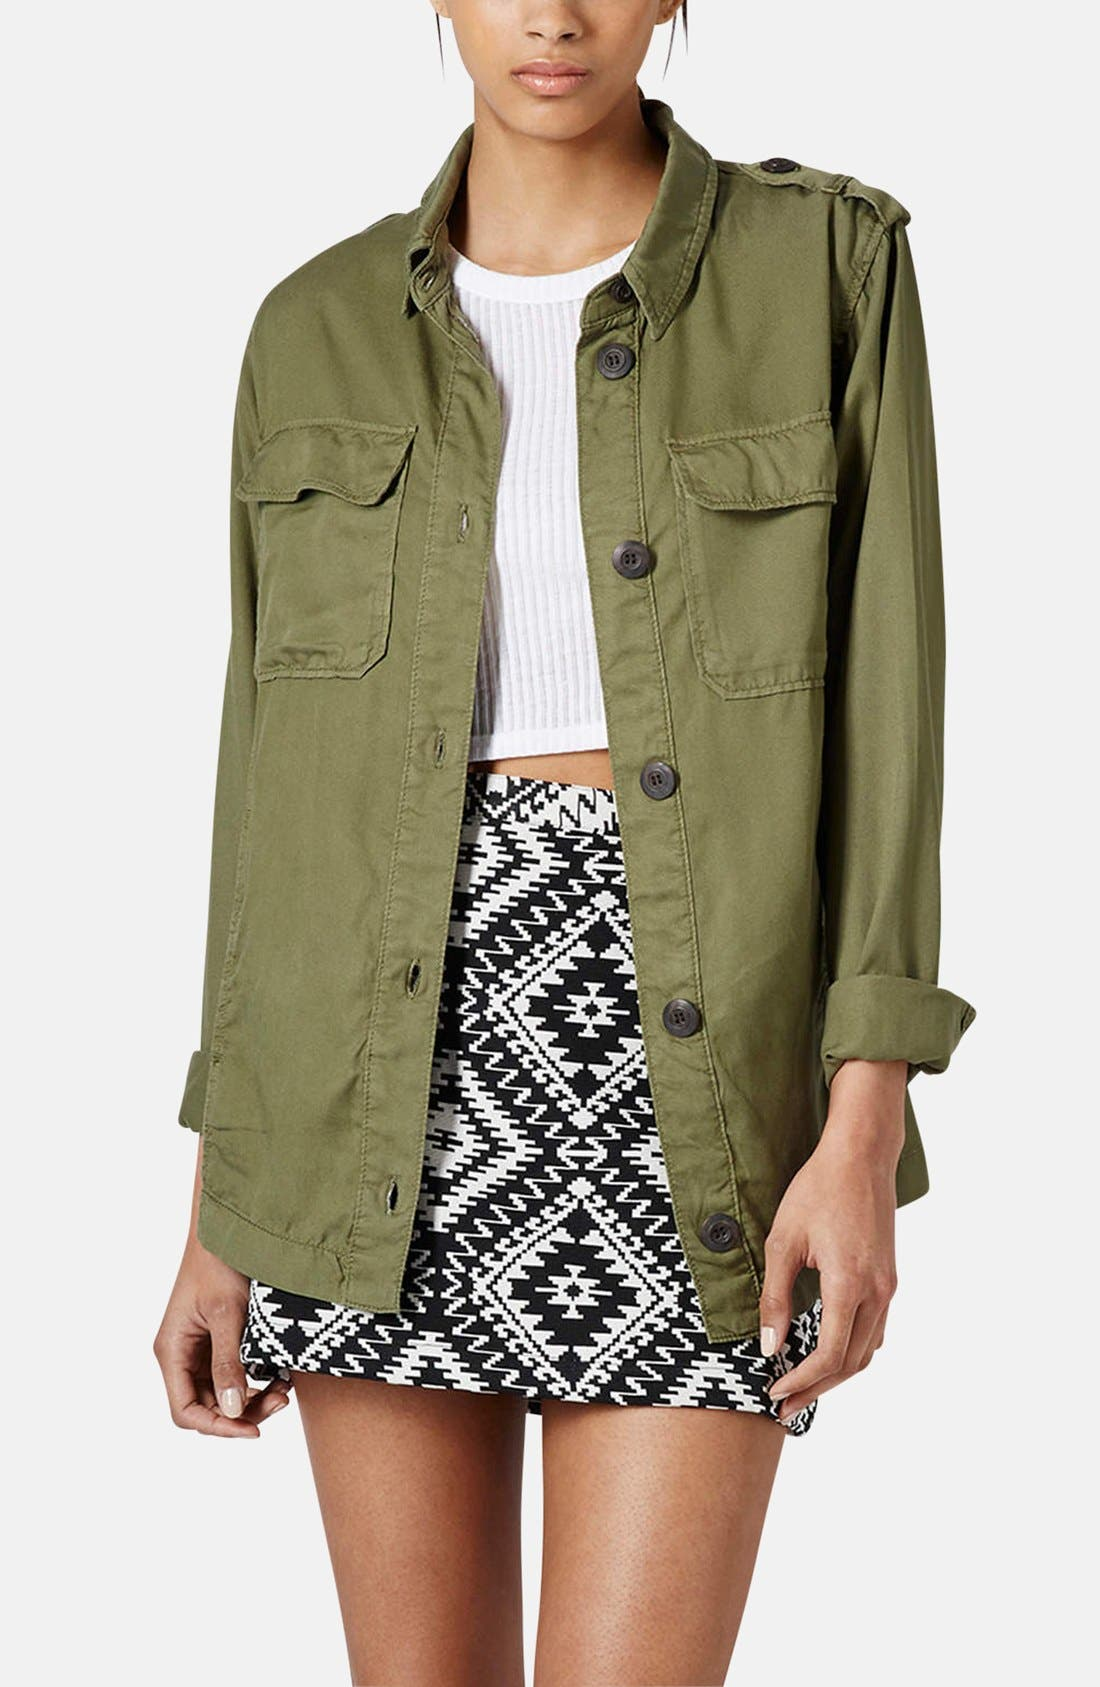 Alternate Image 1 Selected - Topshop 'Rufus Shackett' Army Jacket